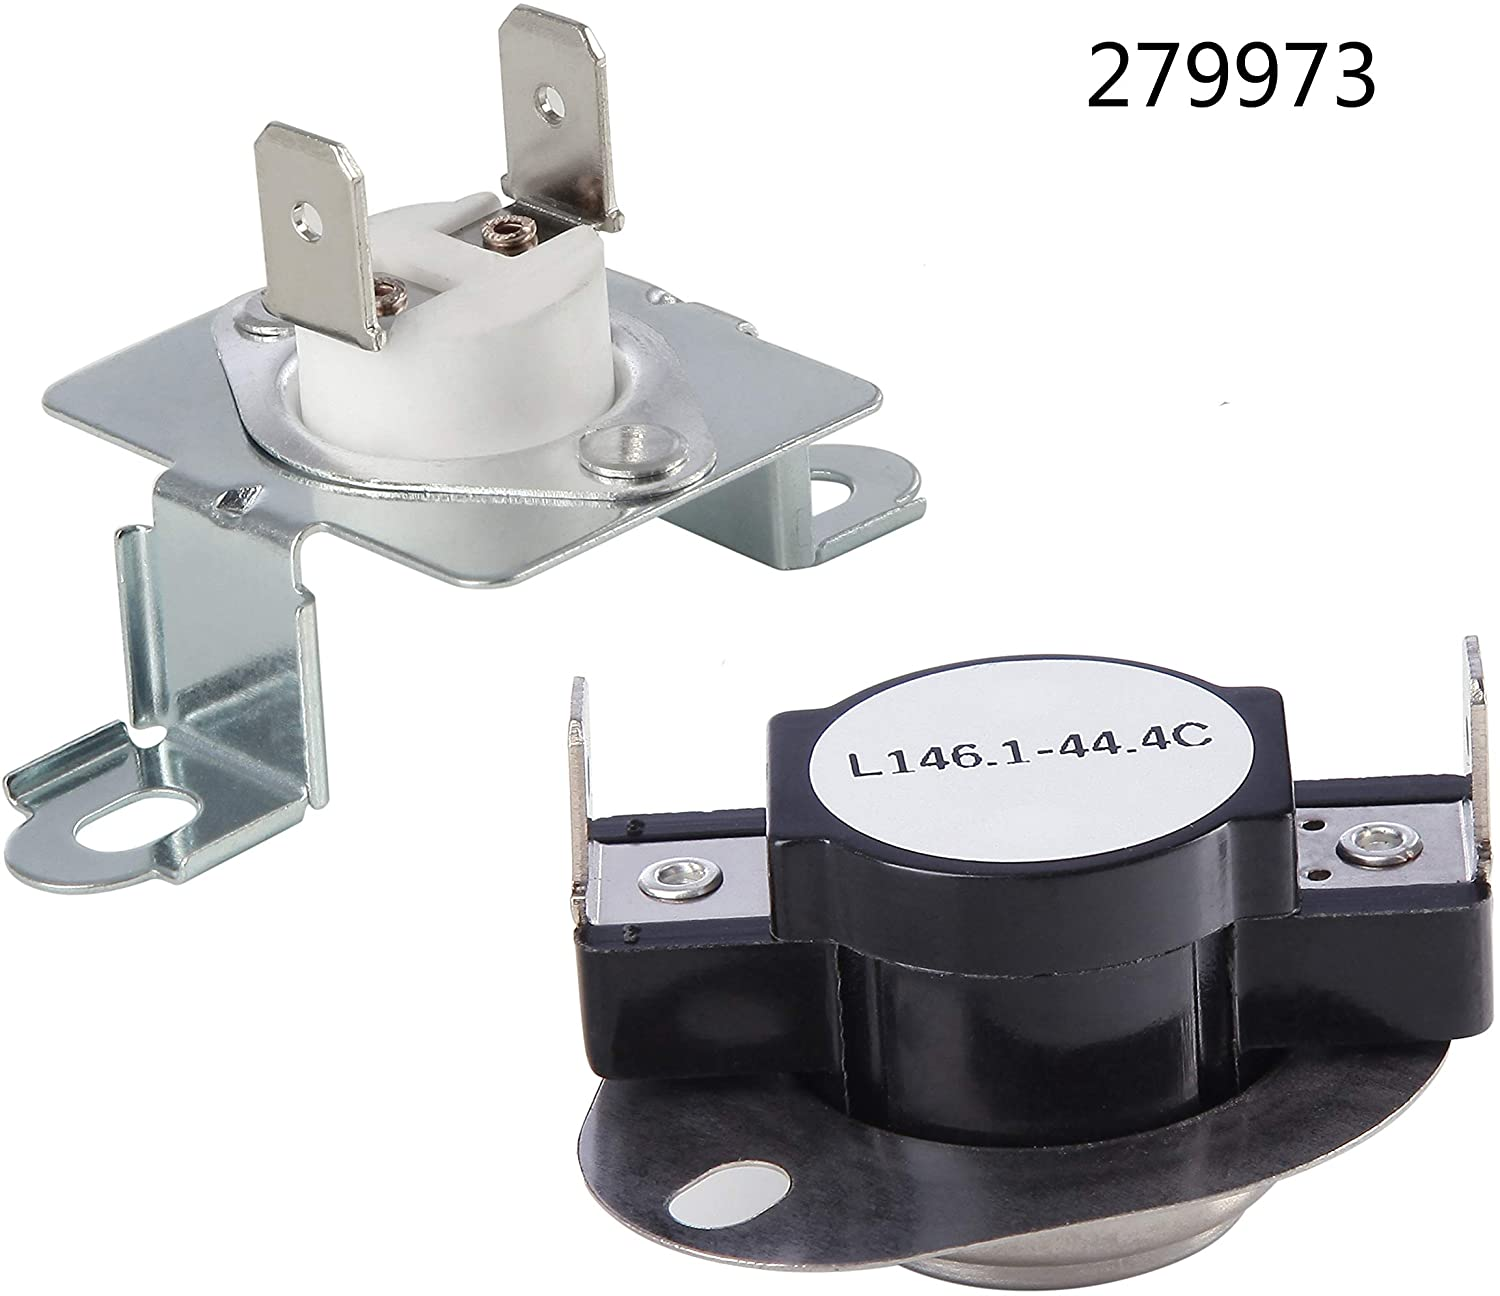 3387747 Dryer Heating Element & 279816 Thermostat Kit & 279973 3392519 Thermal cut-off Fuse Replacement